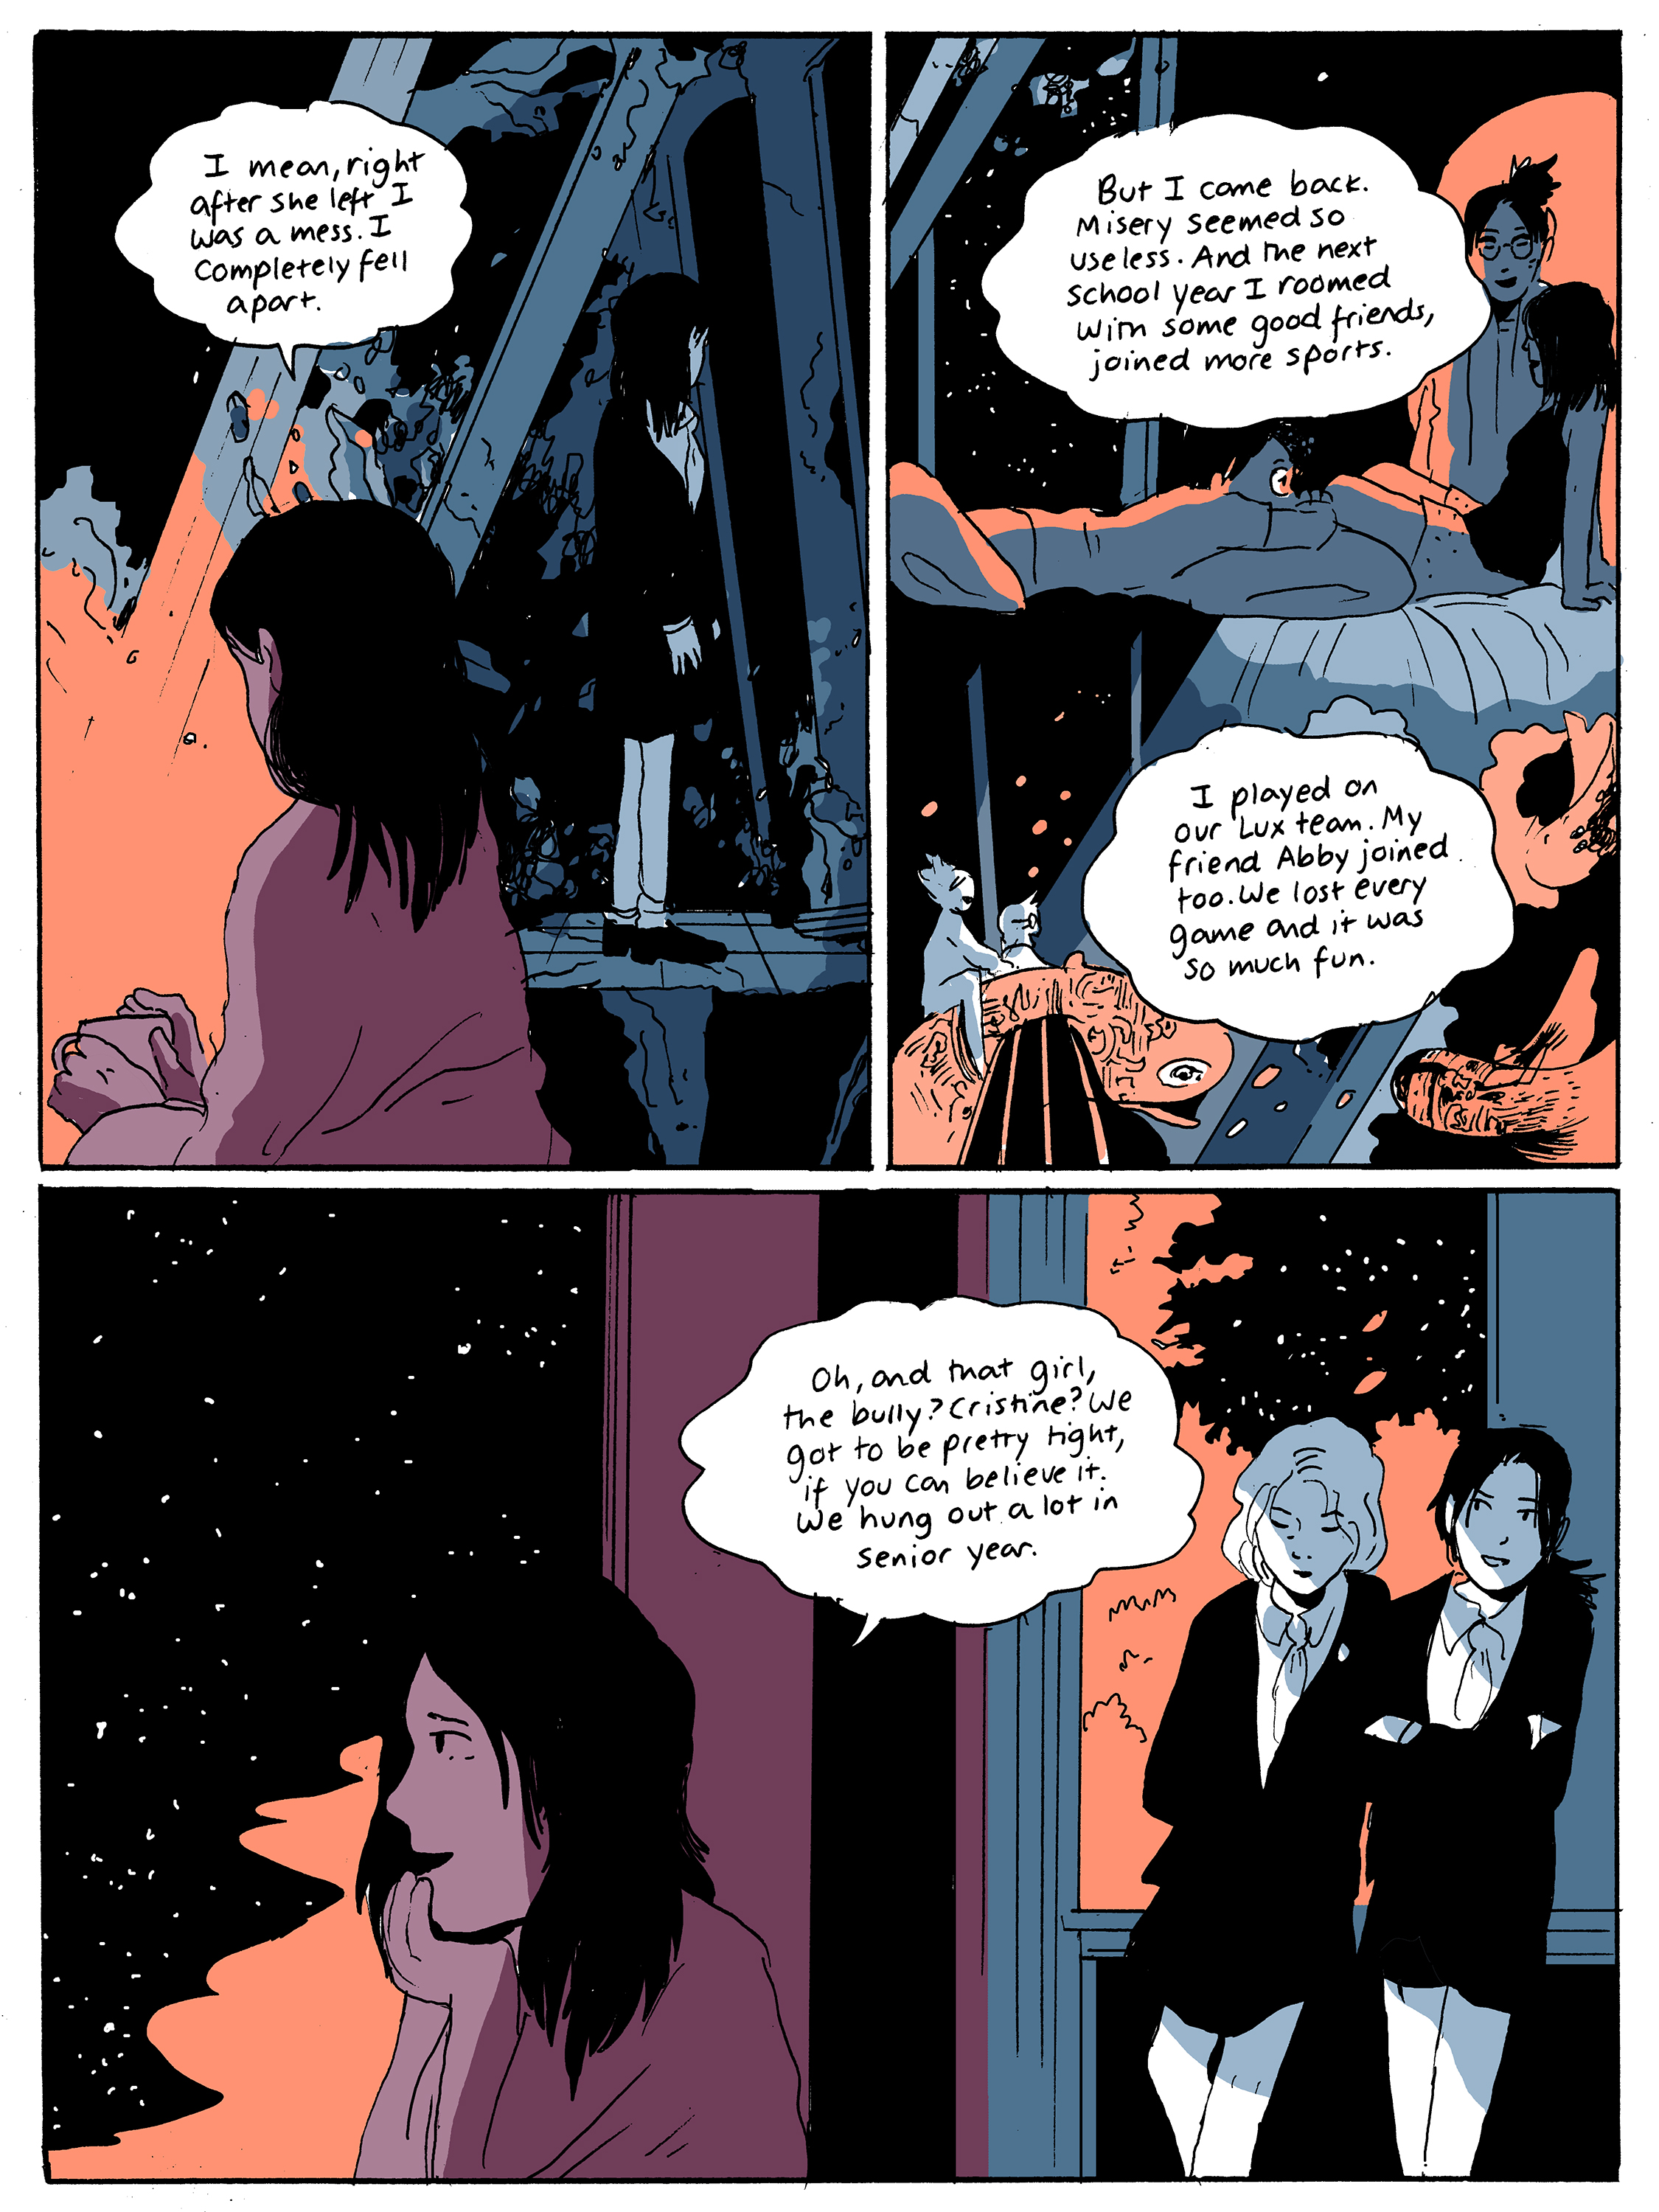 chapter13_page19.jpg